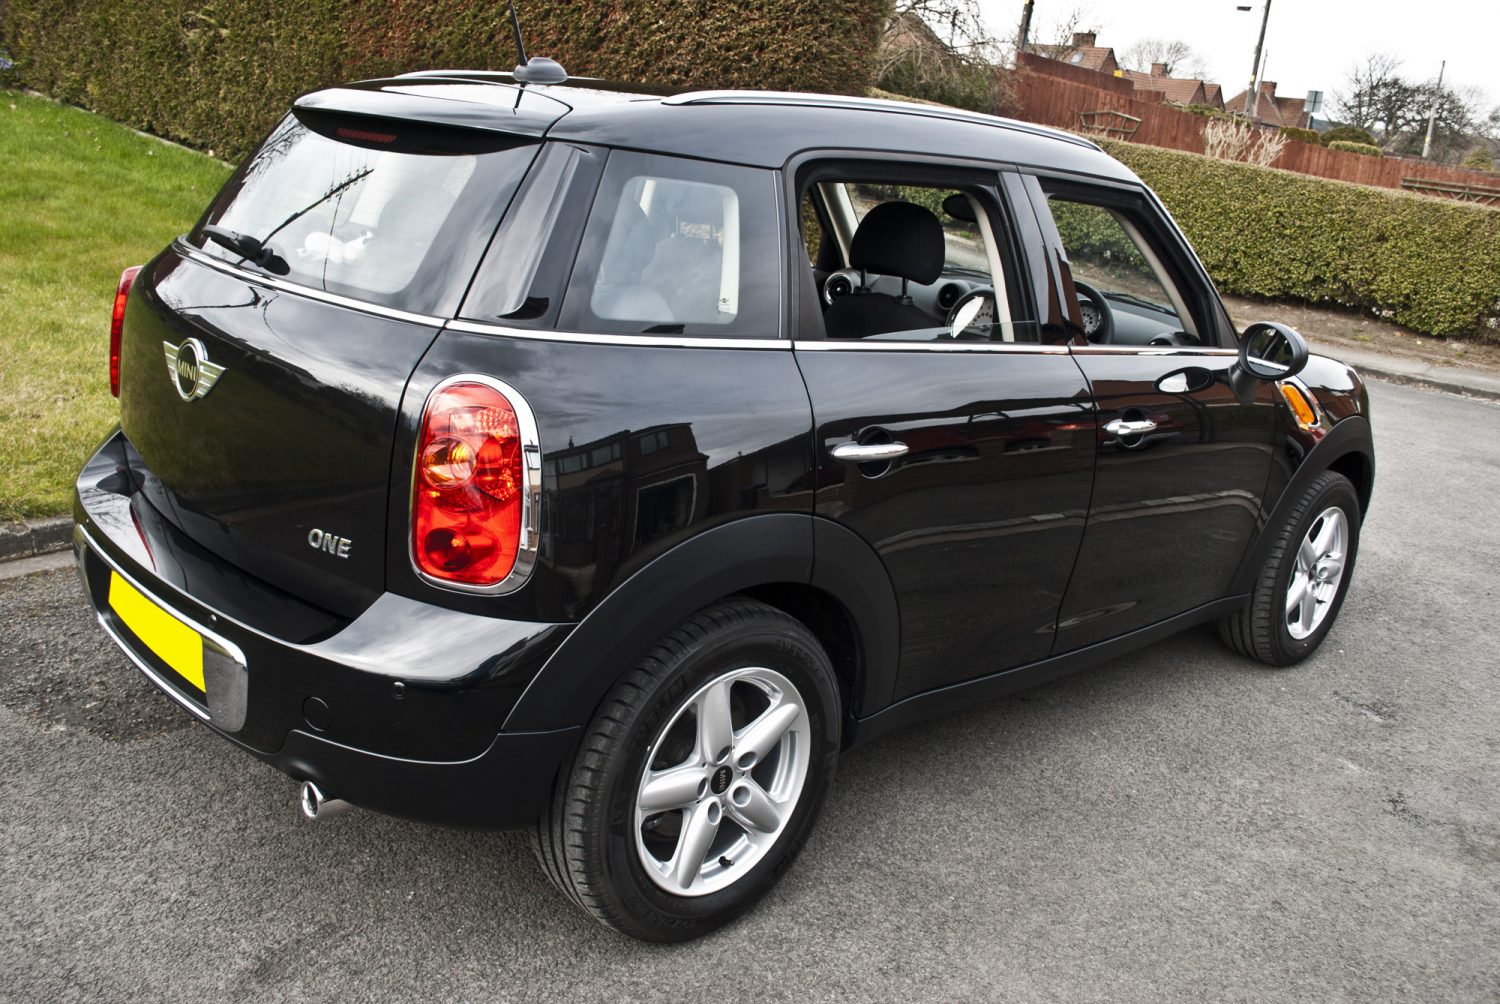 BMW Mini Countryman Detailed by DWR Detailing